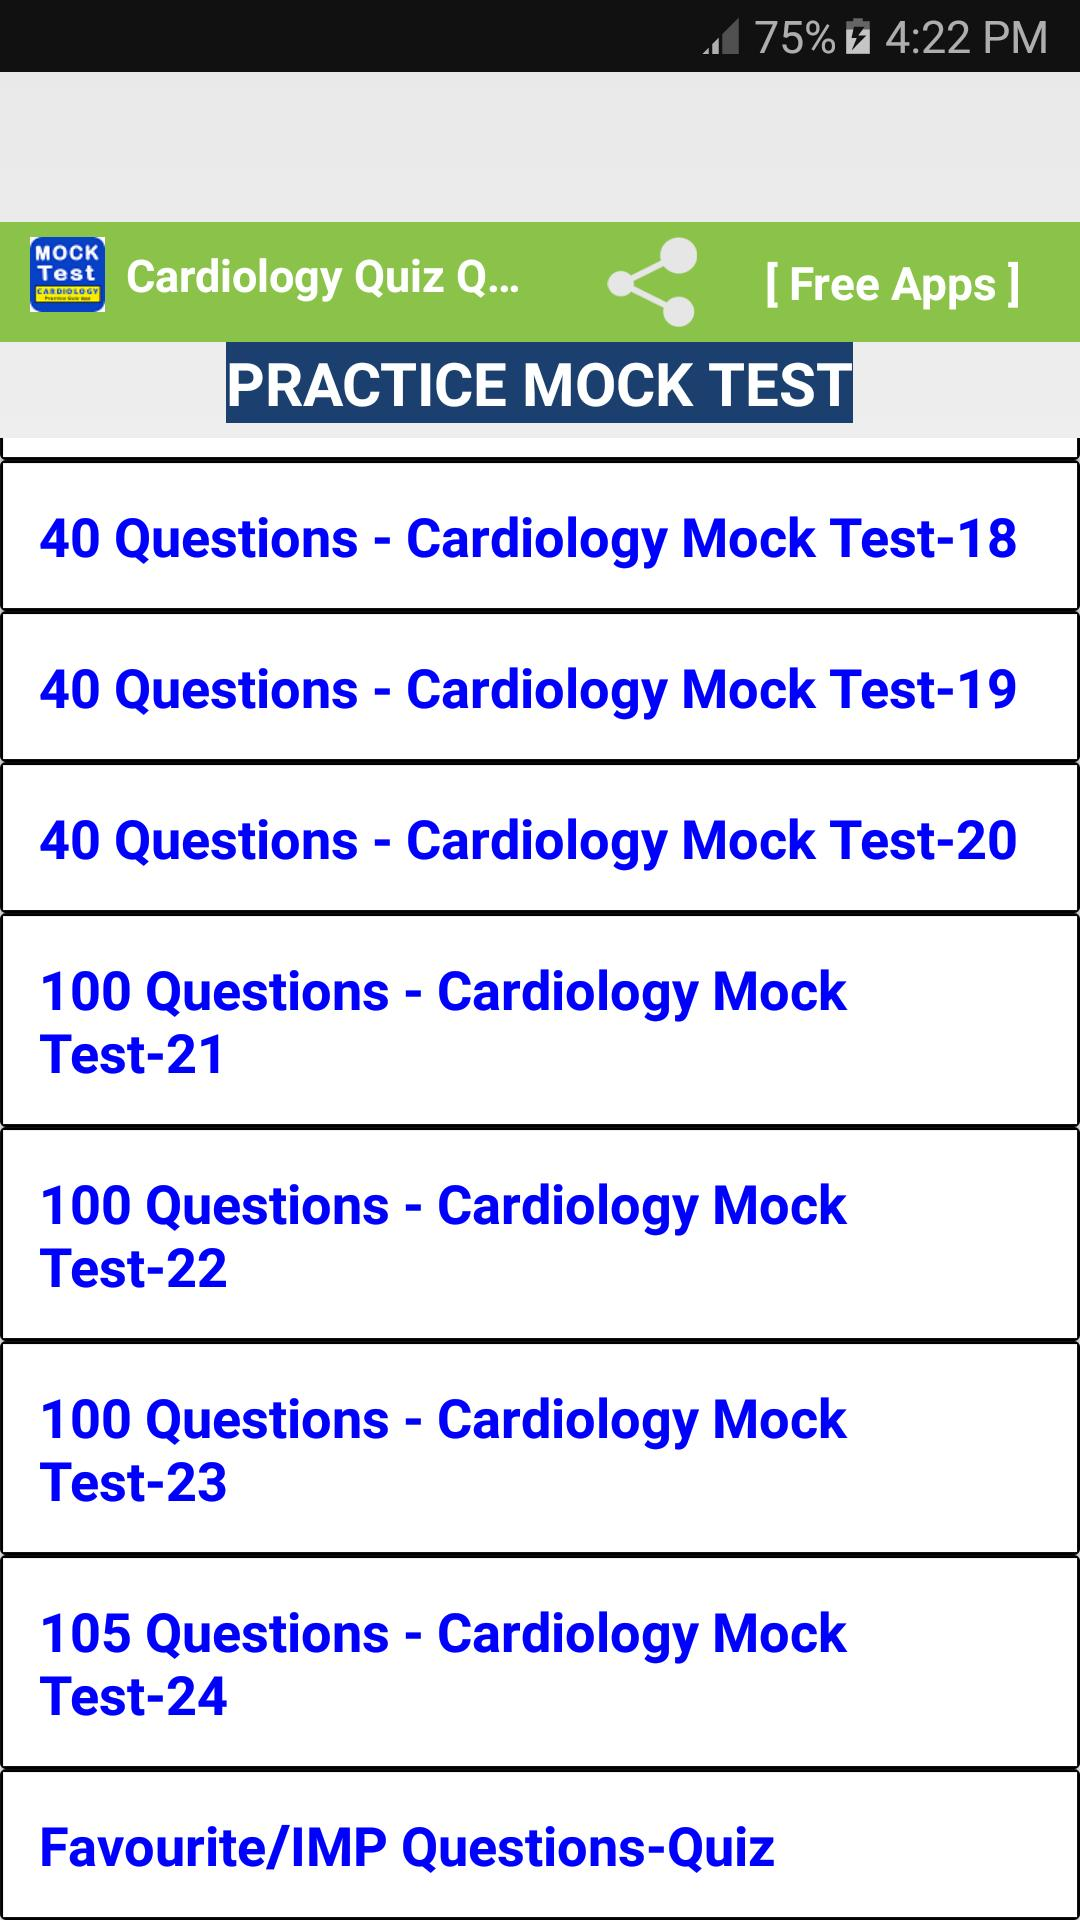 Cardiology Quiz Questions Answers free for Android - APK